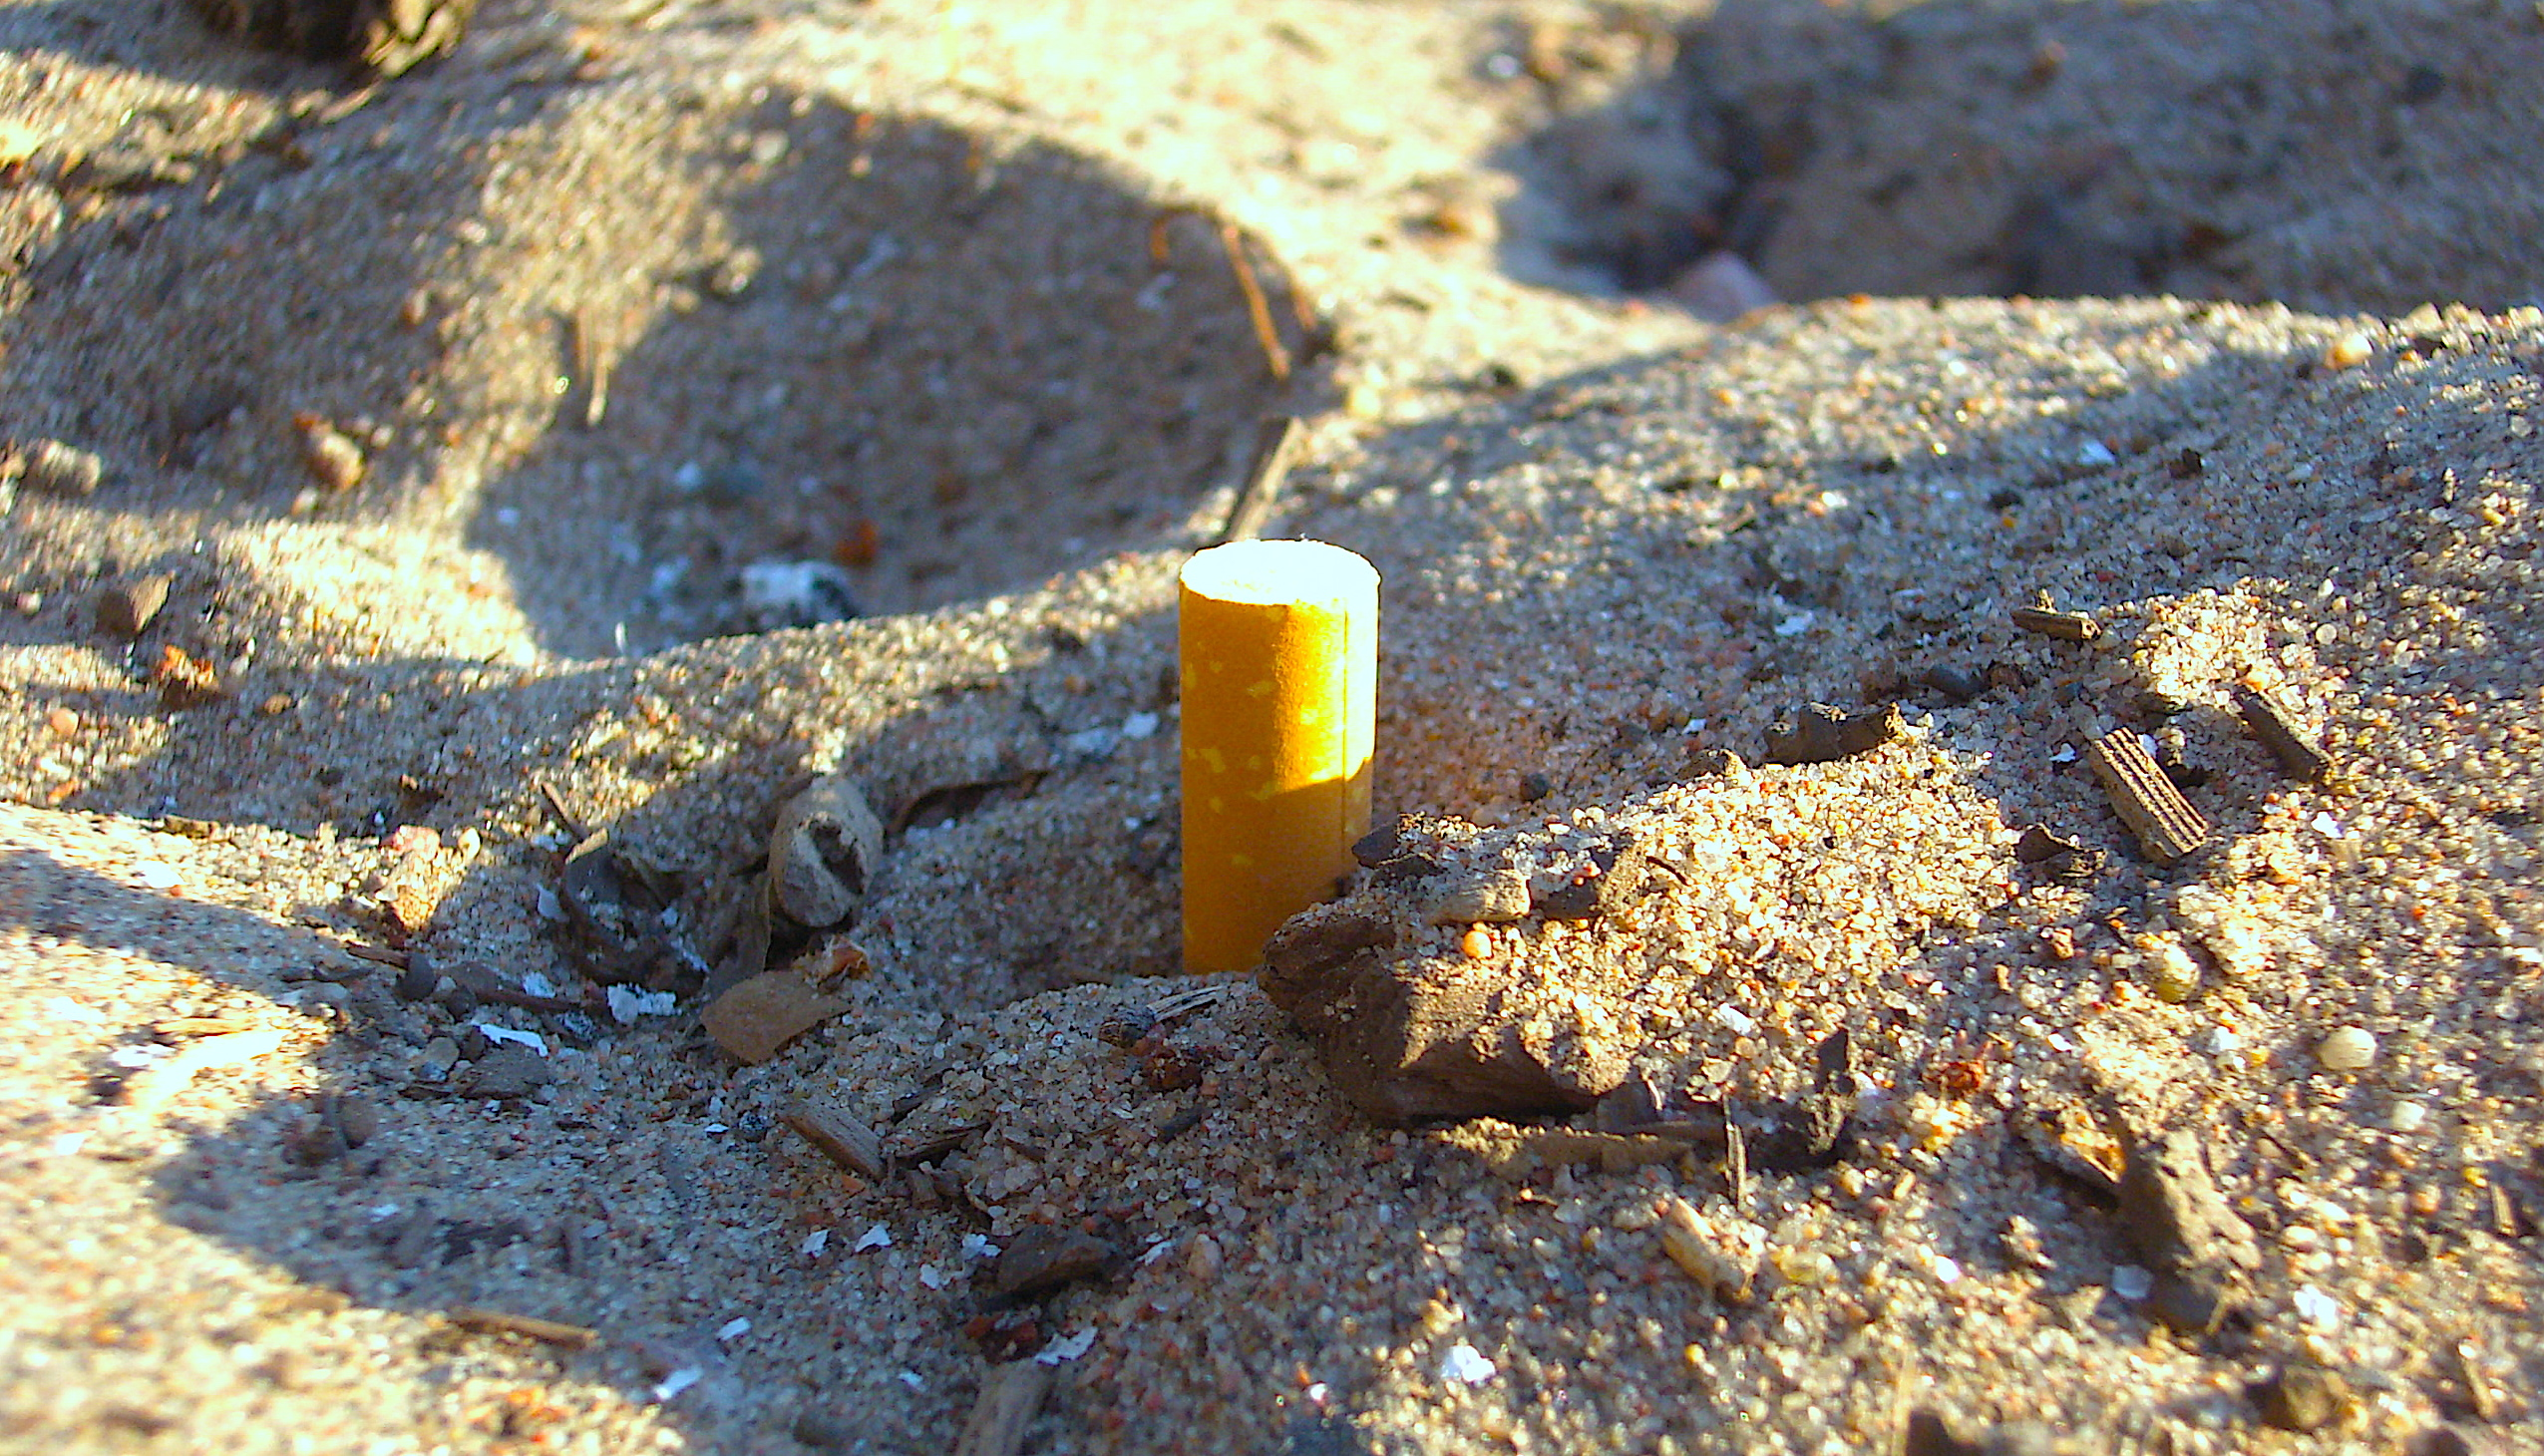 image: cigarette butt, photo by Helen Penjam via CC-BY-2.0 (edited)